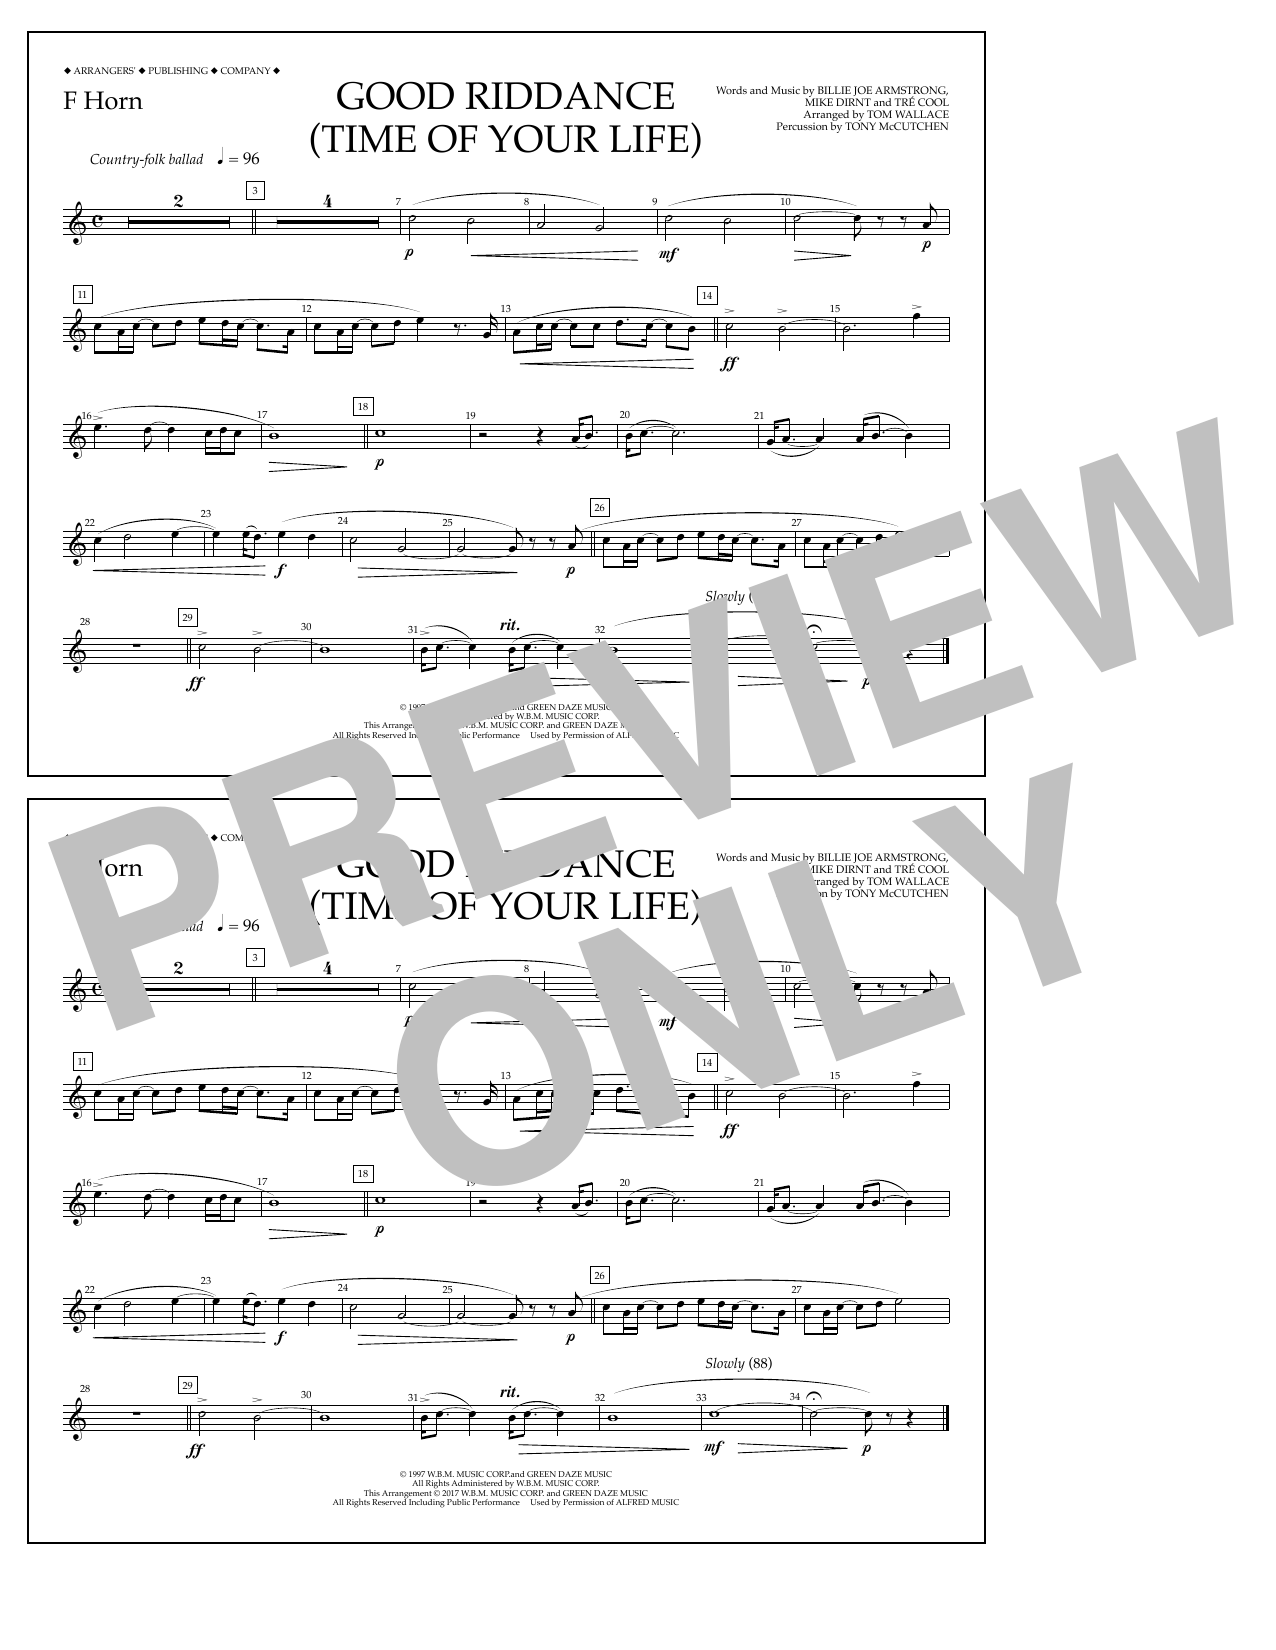 Good Riddance (Time of Your Life) - F Horn Sheet Music